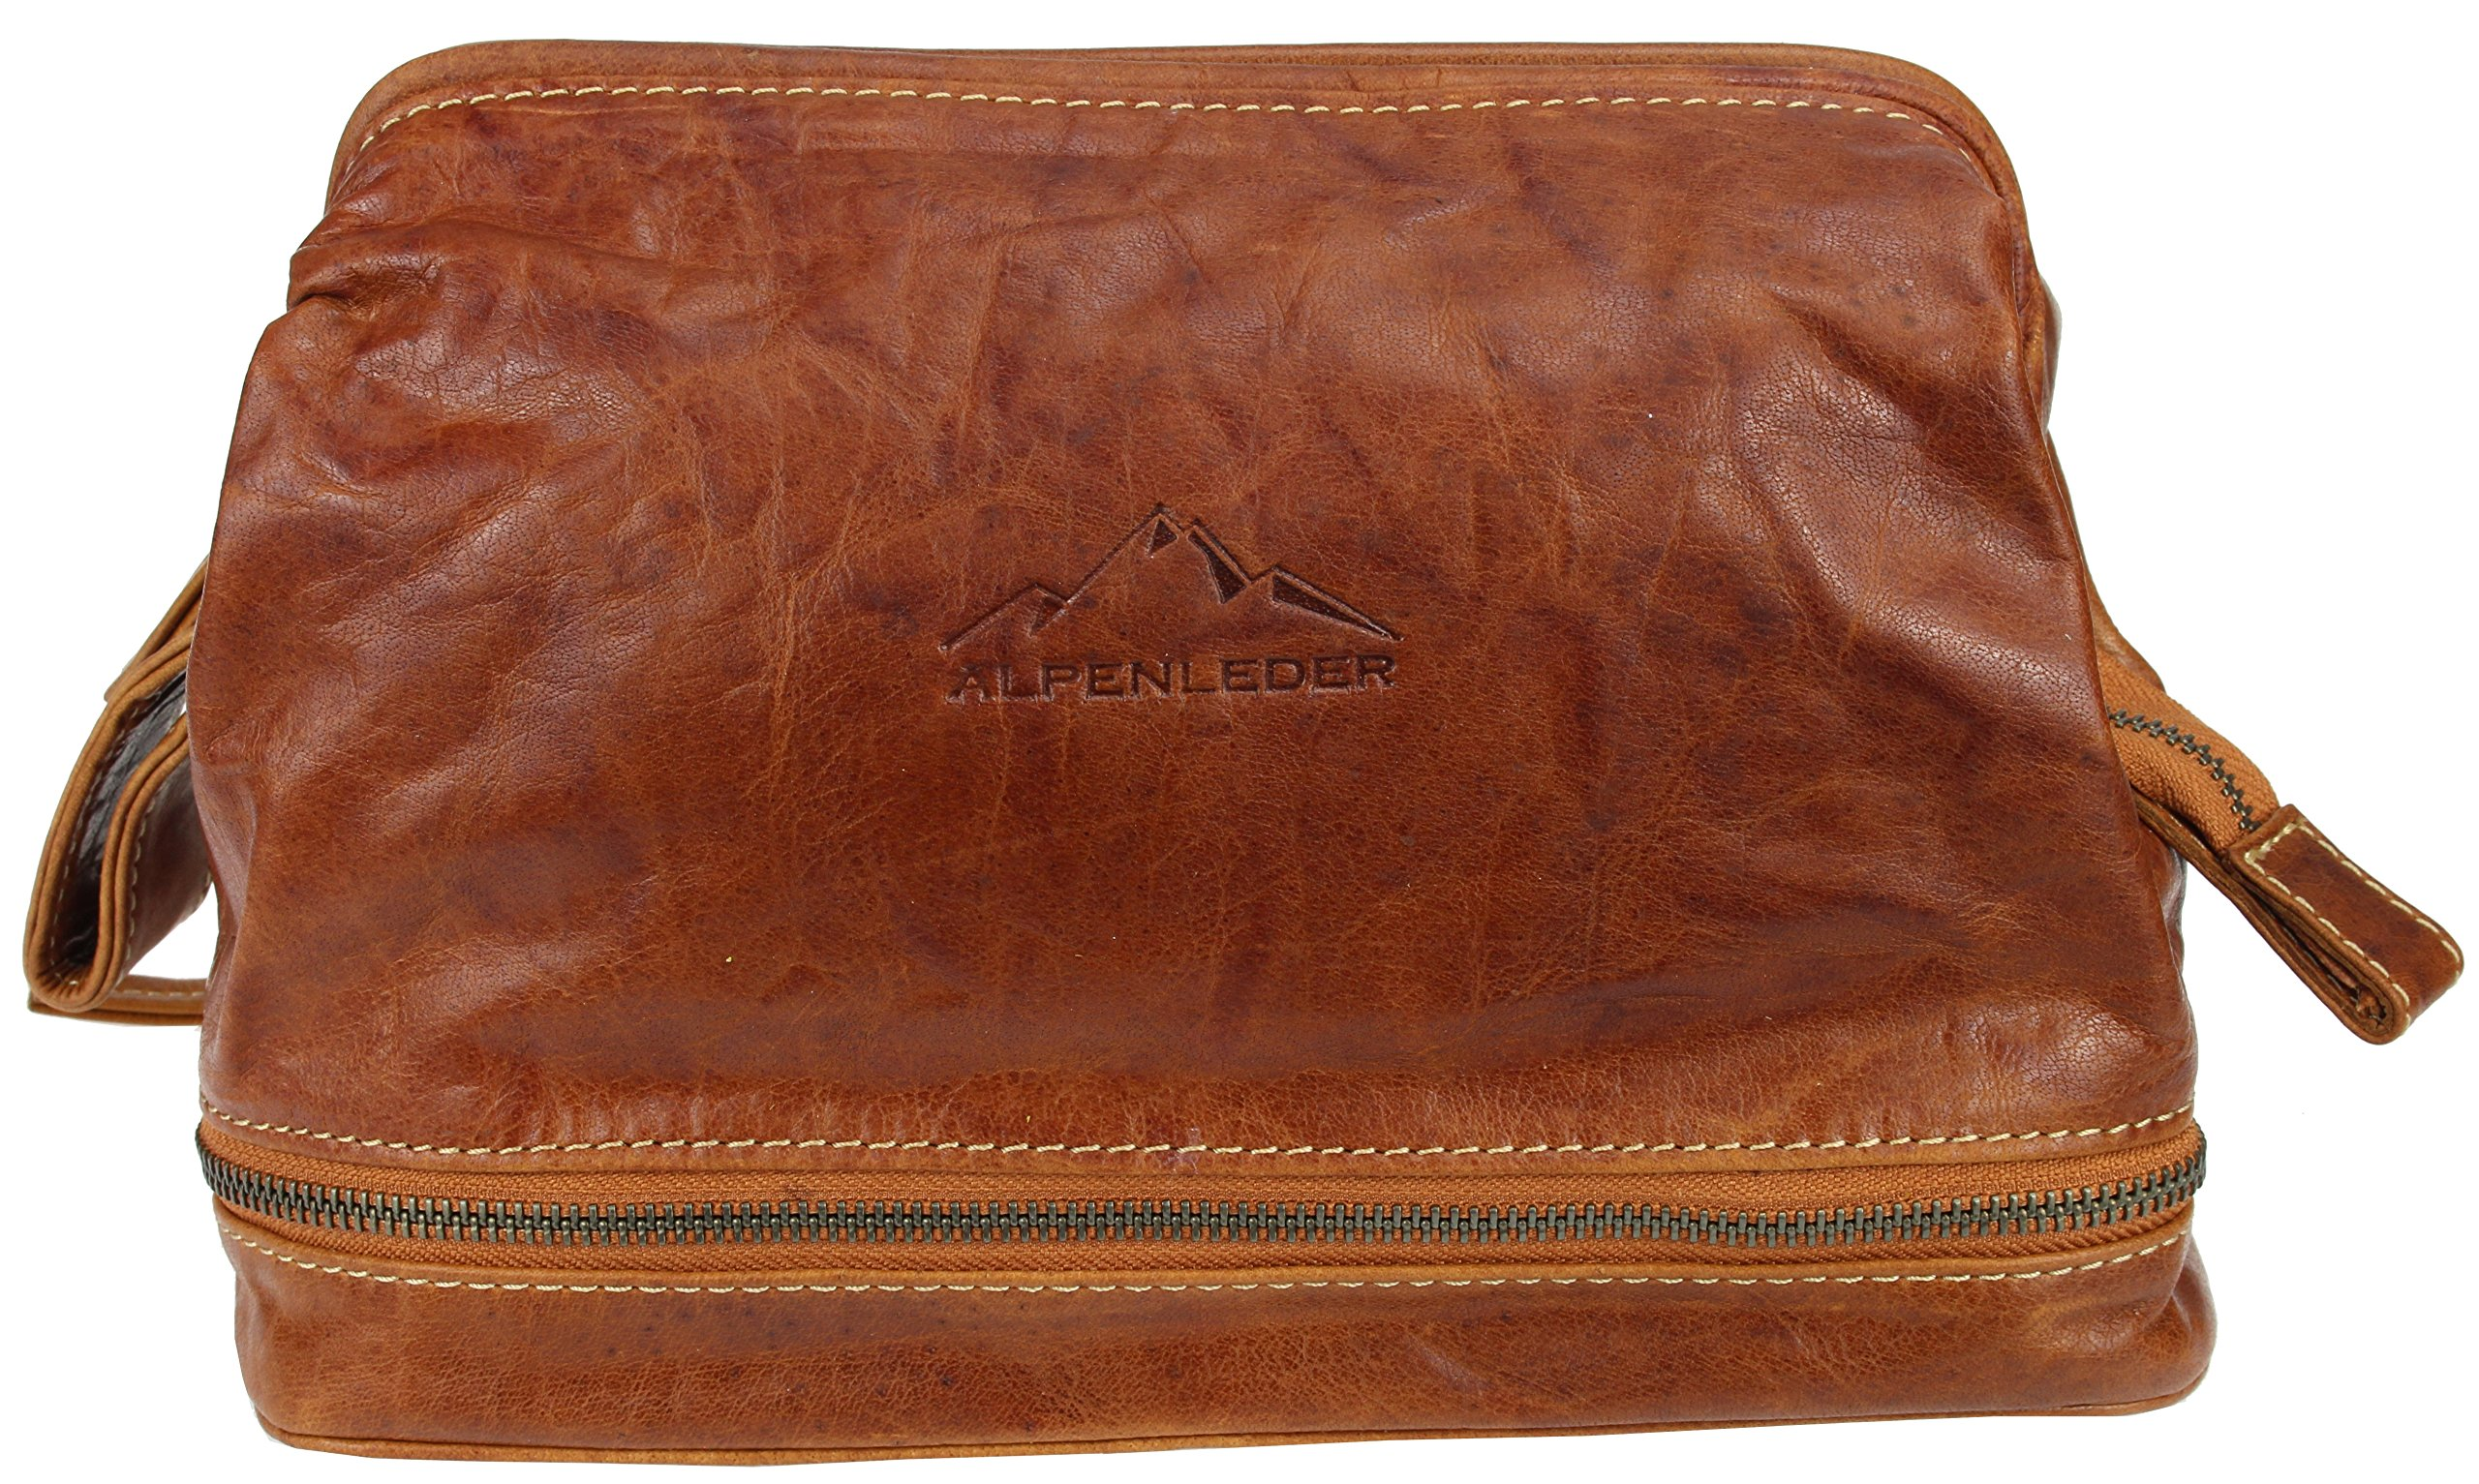 "CDM product Toiletry Bag""LAGO DI COMO"" 